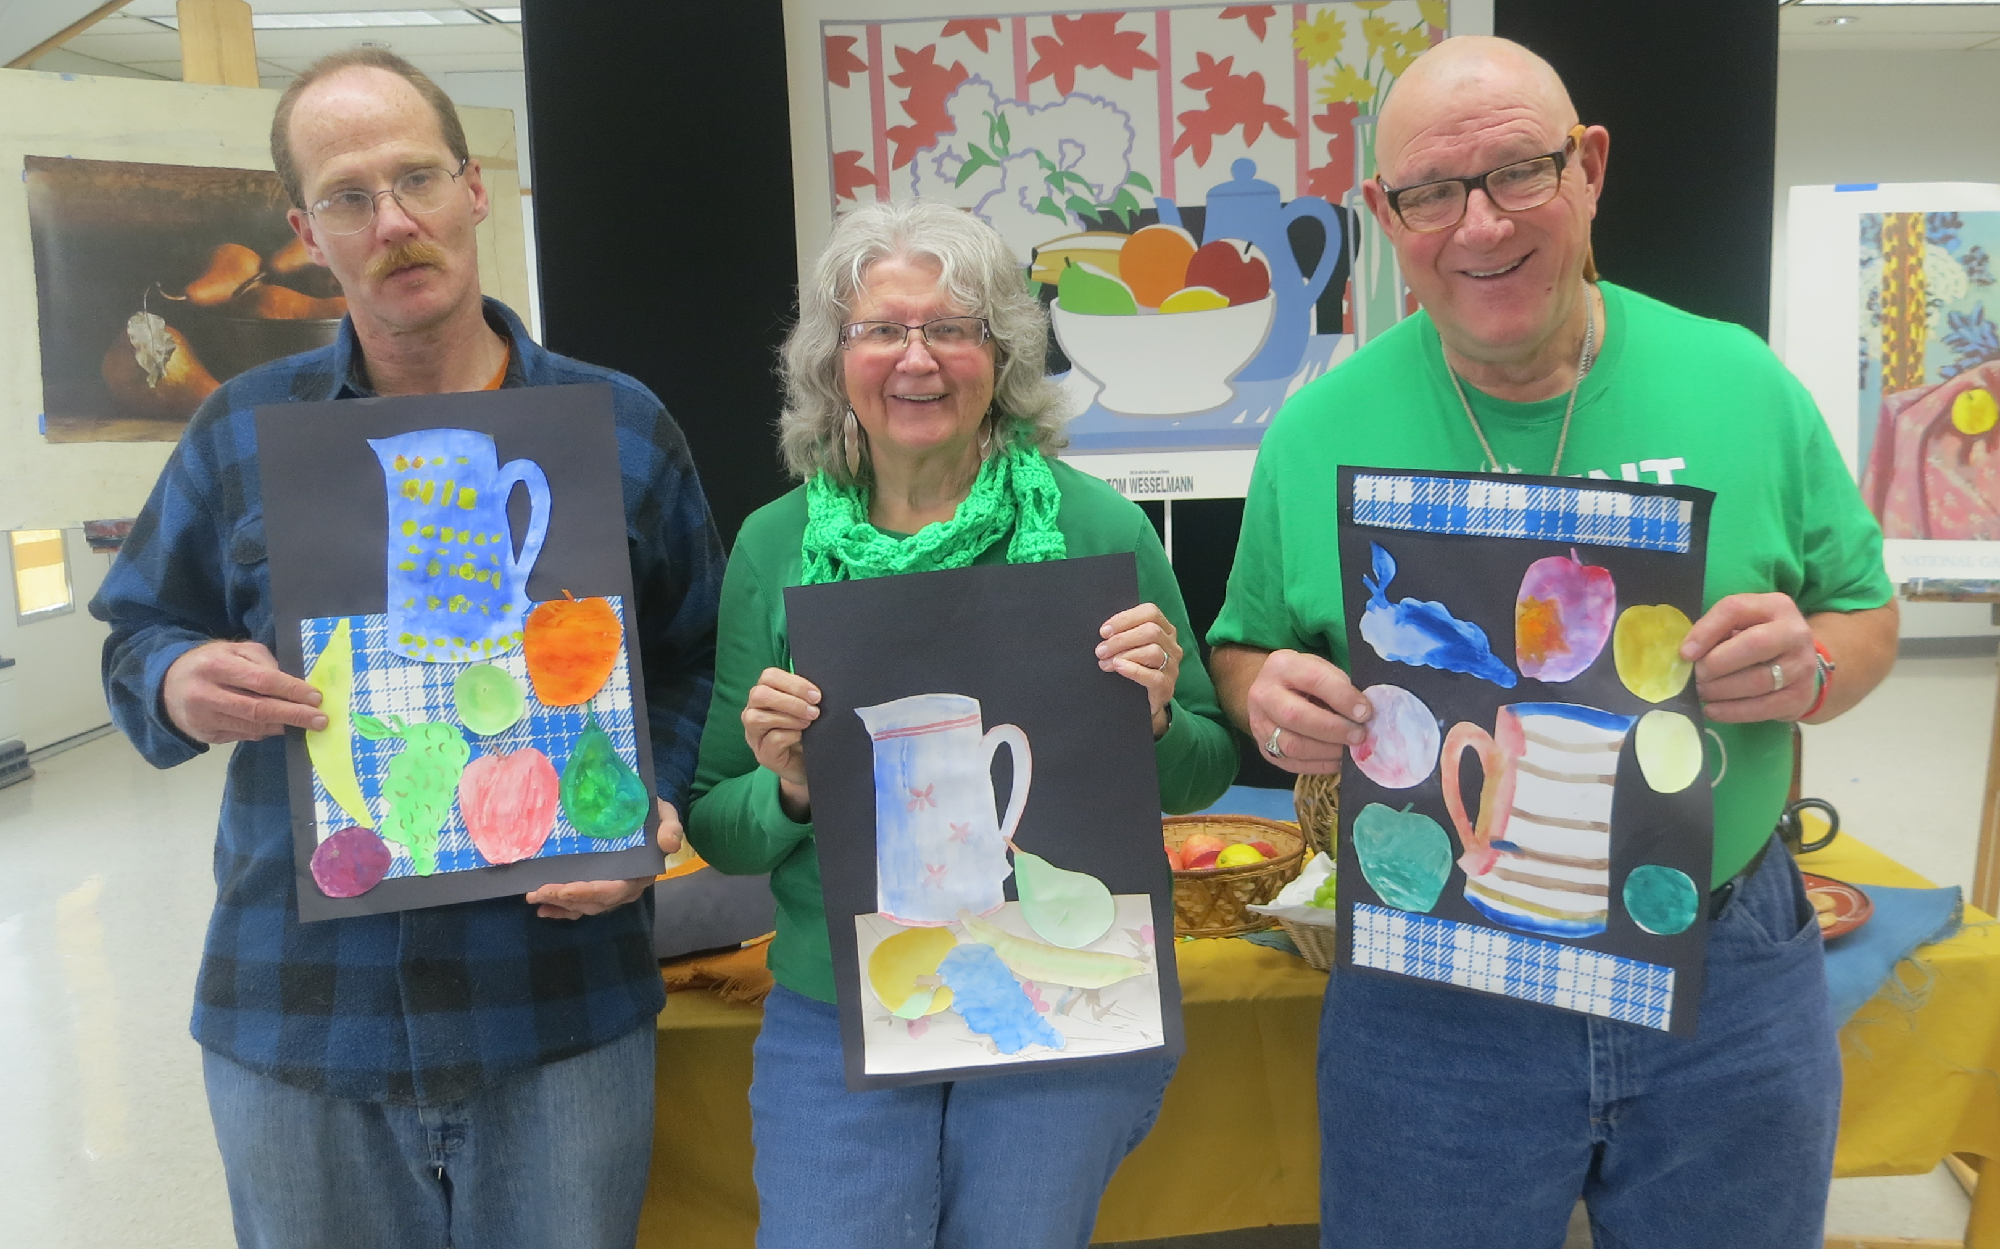 Three adults are holding up their paintings of a water pitcher and fruit.